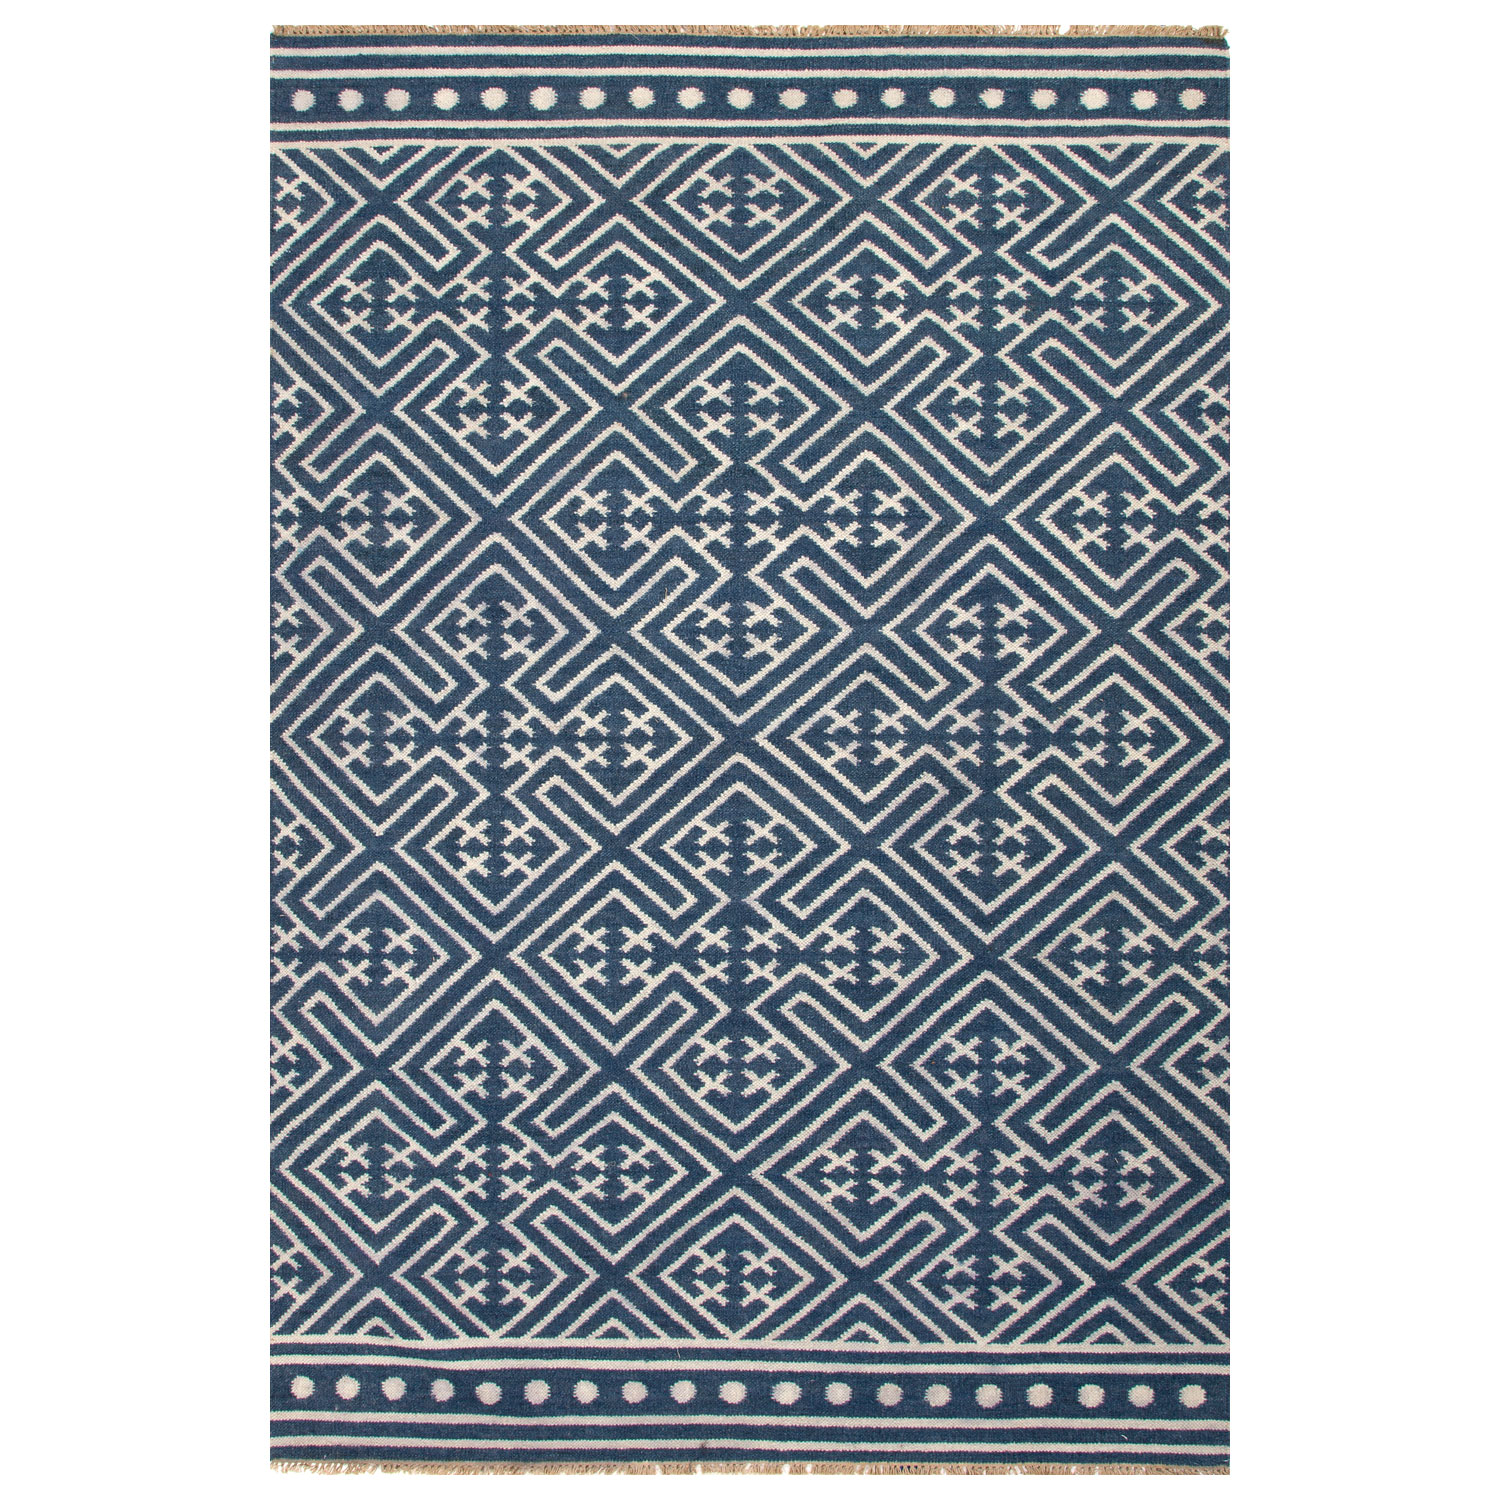 Drawing inspiration from the textiles of Southeast Asia, the Jaipur Batik Lahu rug infuses sophisticated spaces with eclectic appeal. The geometric patterning of this layer graphically grabs attention, perfectly accented with fringed edges. The color scheme maintains a classic feel, while the flat-woven wool fabrication provides sturdy softness. 2'W x 3'L. 5'W x 8'L. 8'W x 10'L. 9'W x 12'L. Dark Denim & Silver Green. Colors noted are Pantone TPX. 100% wool....